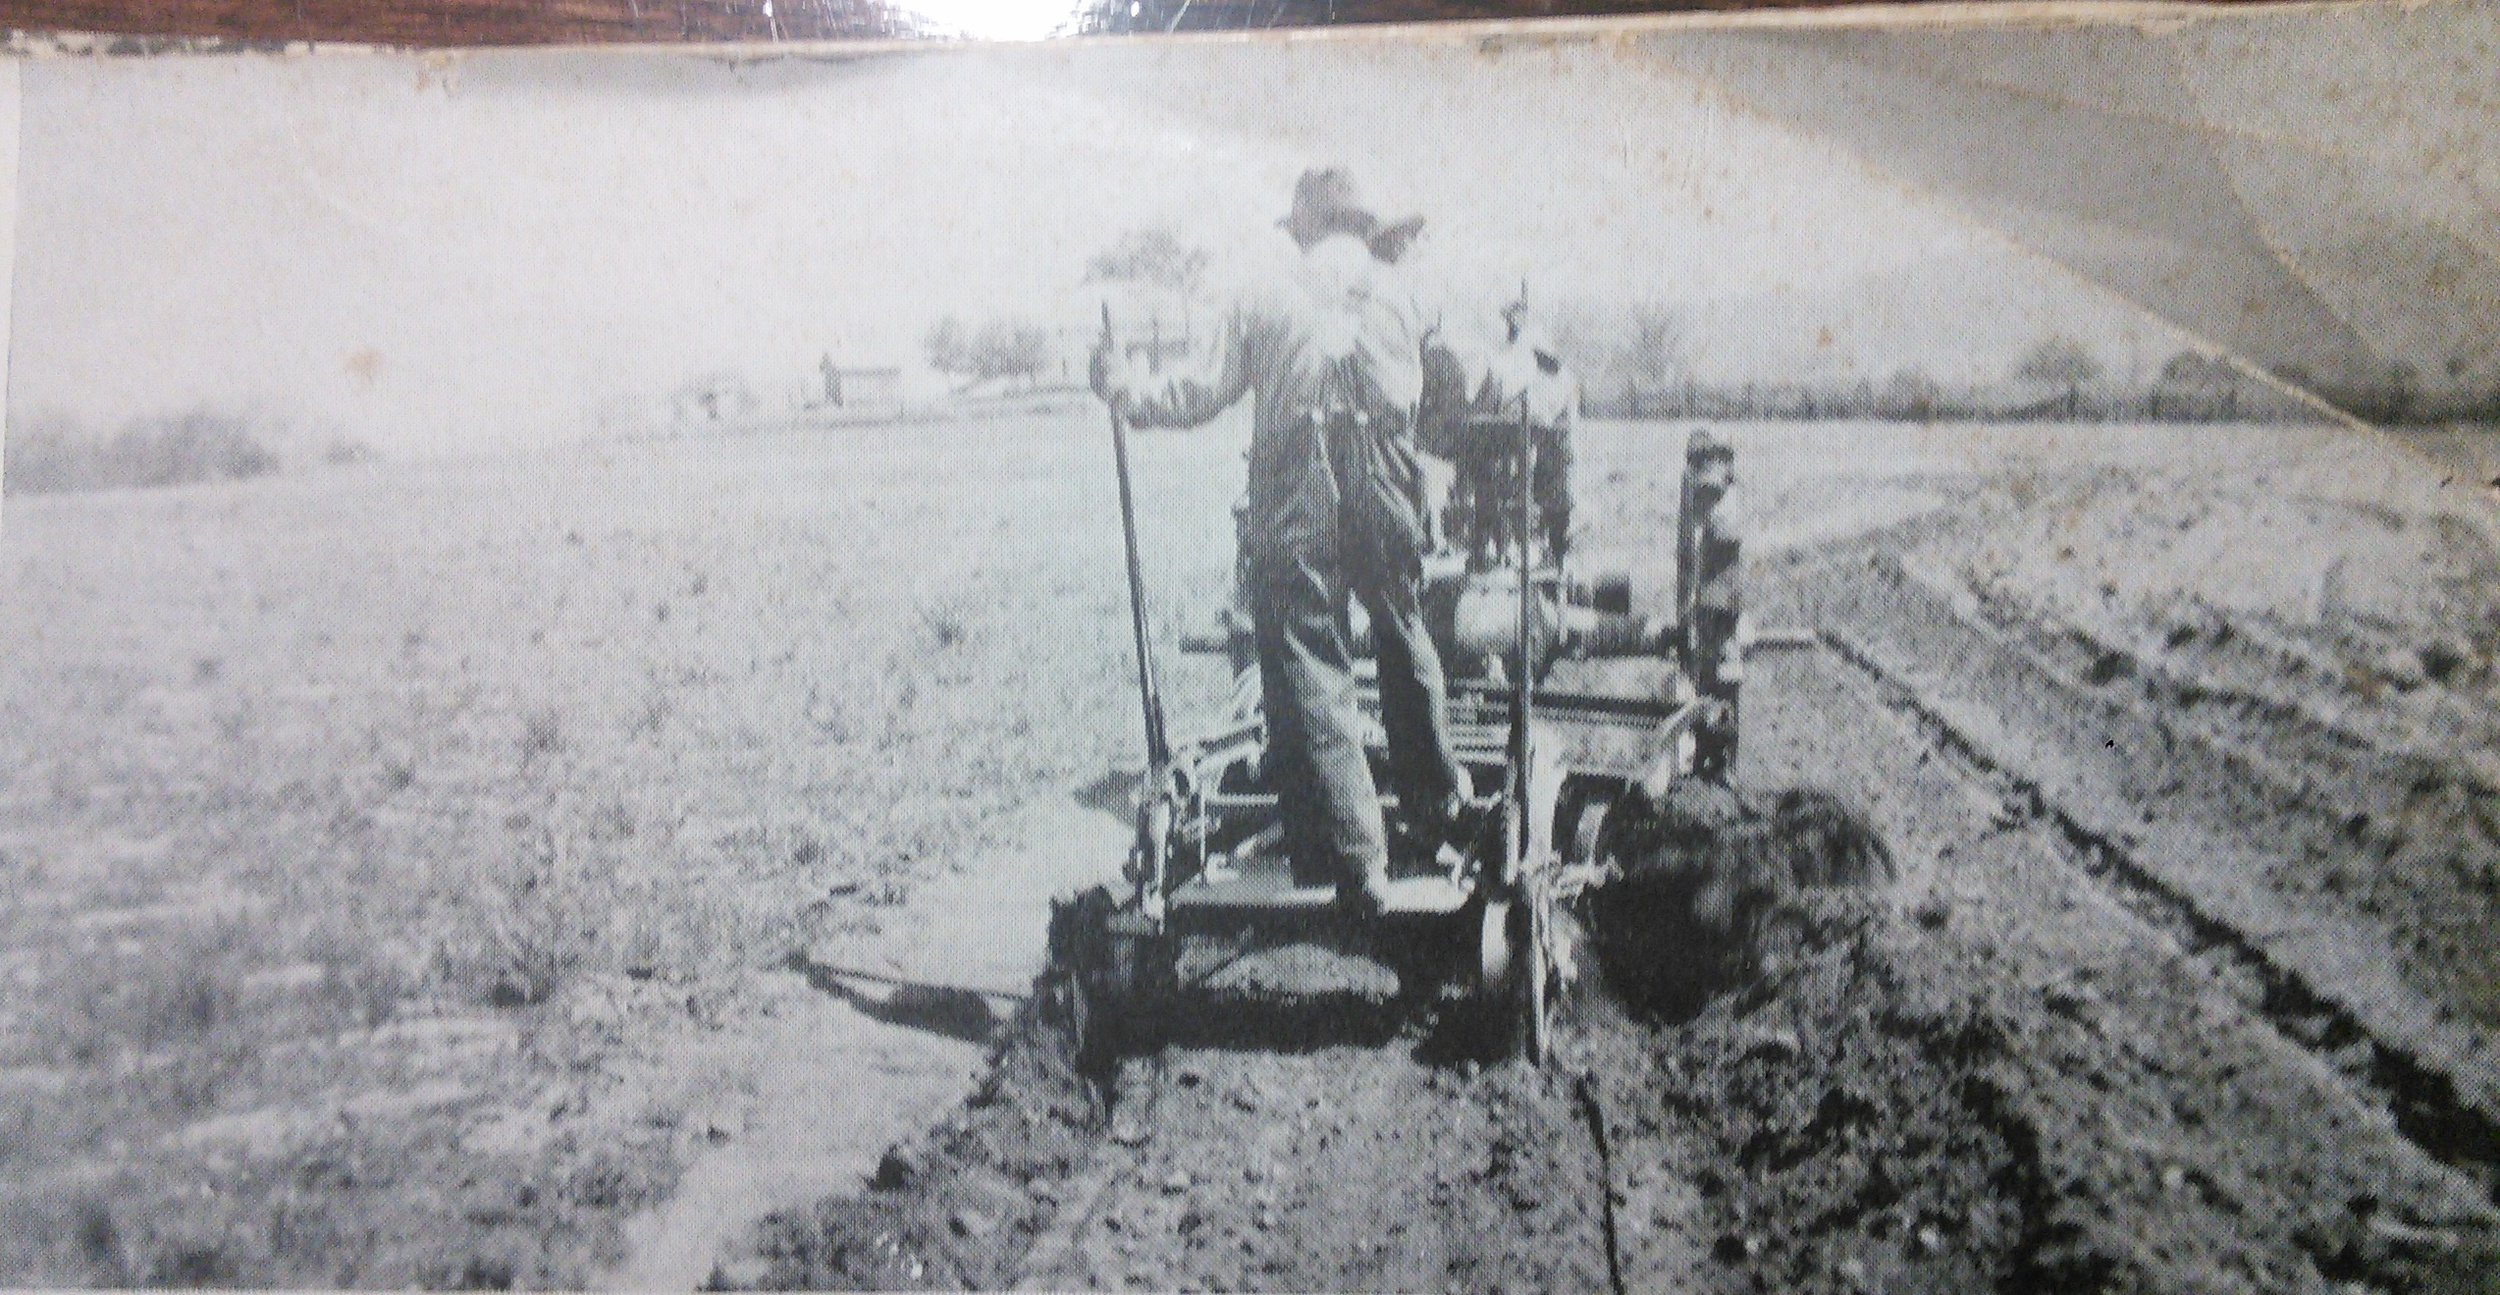 Overton County Farmer in 1940. Can anyone identify the implement he's using?  Please leave a comment if you recognize it. My best guess is a planter